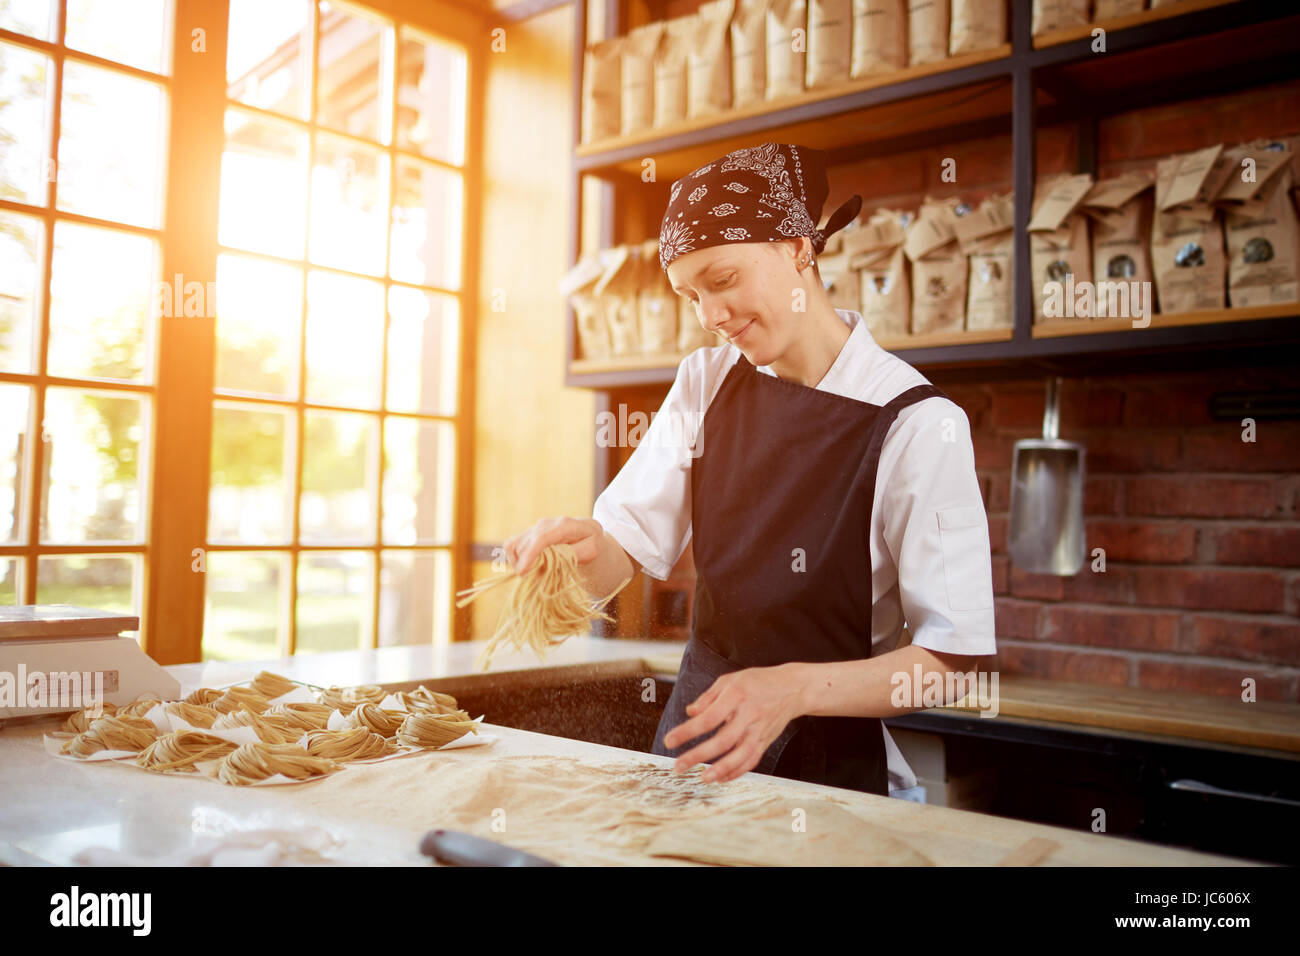 Woman cooking noodles in cafe - Stock Image